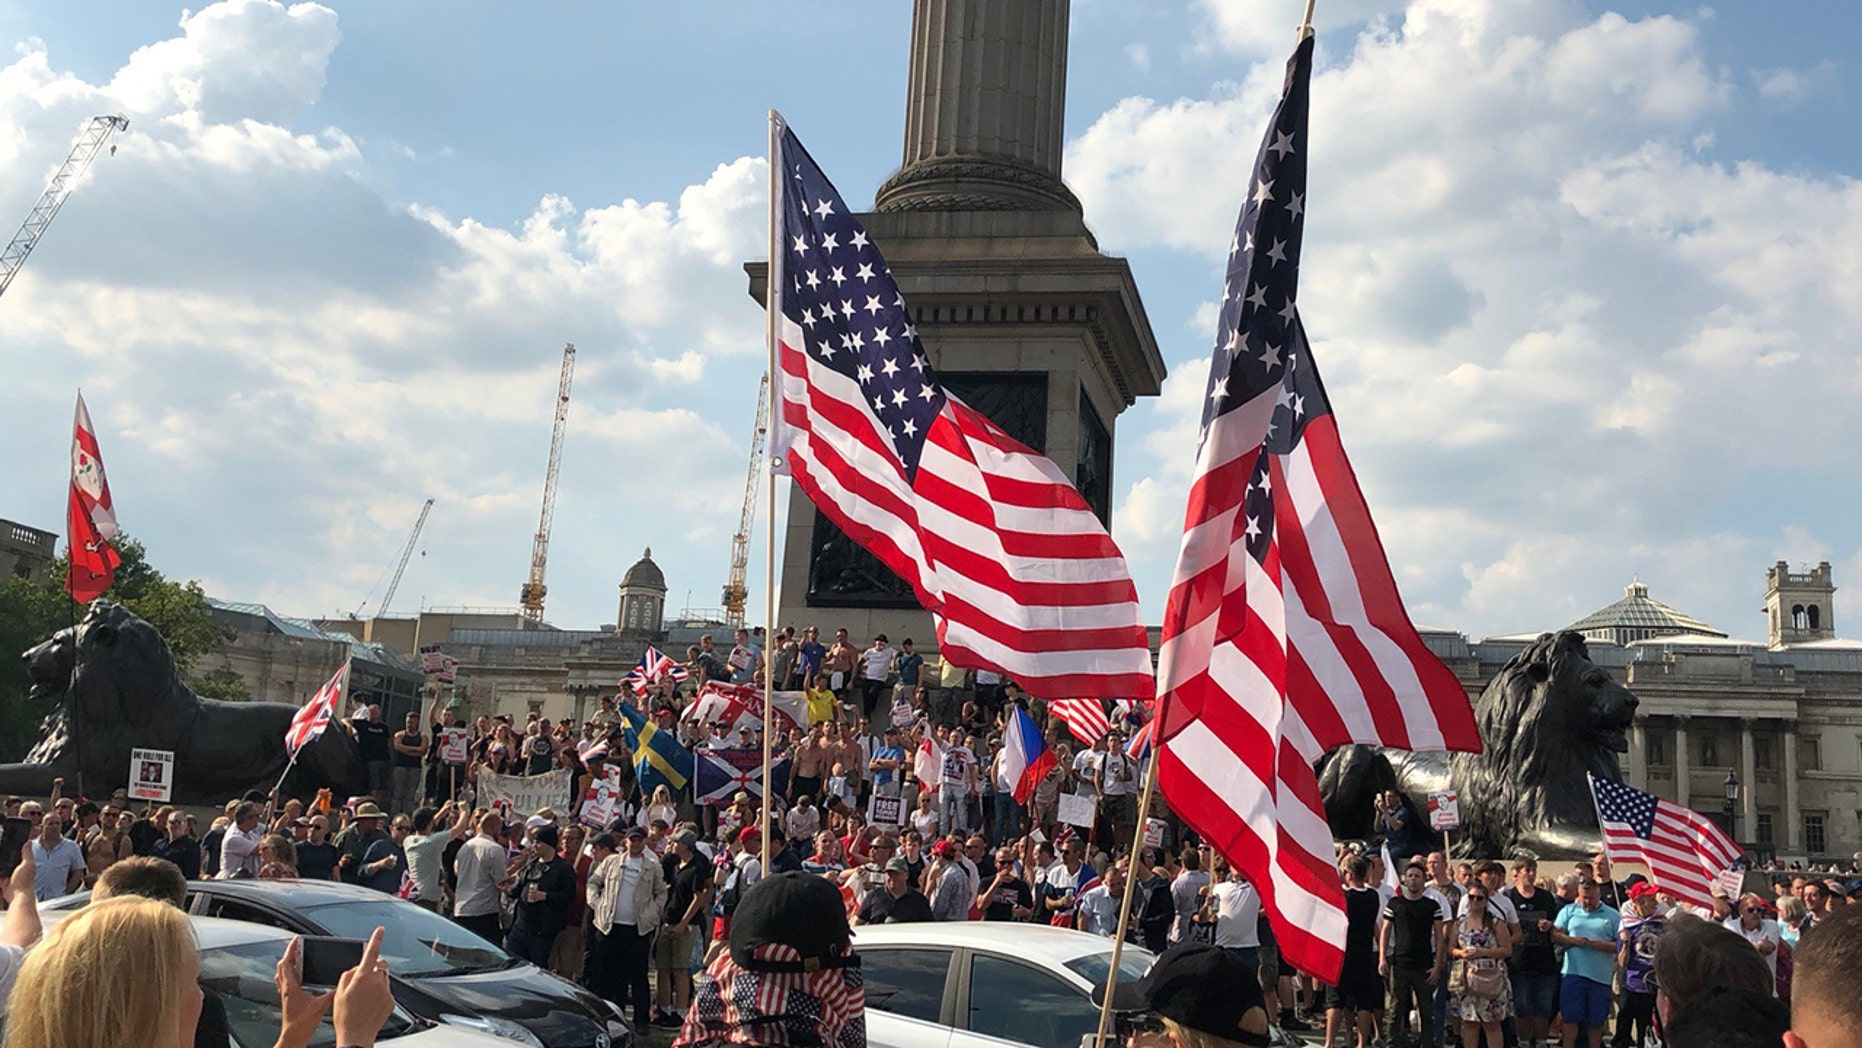 Pro-Trump supporters took to the streets on Saturday.